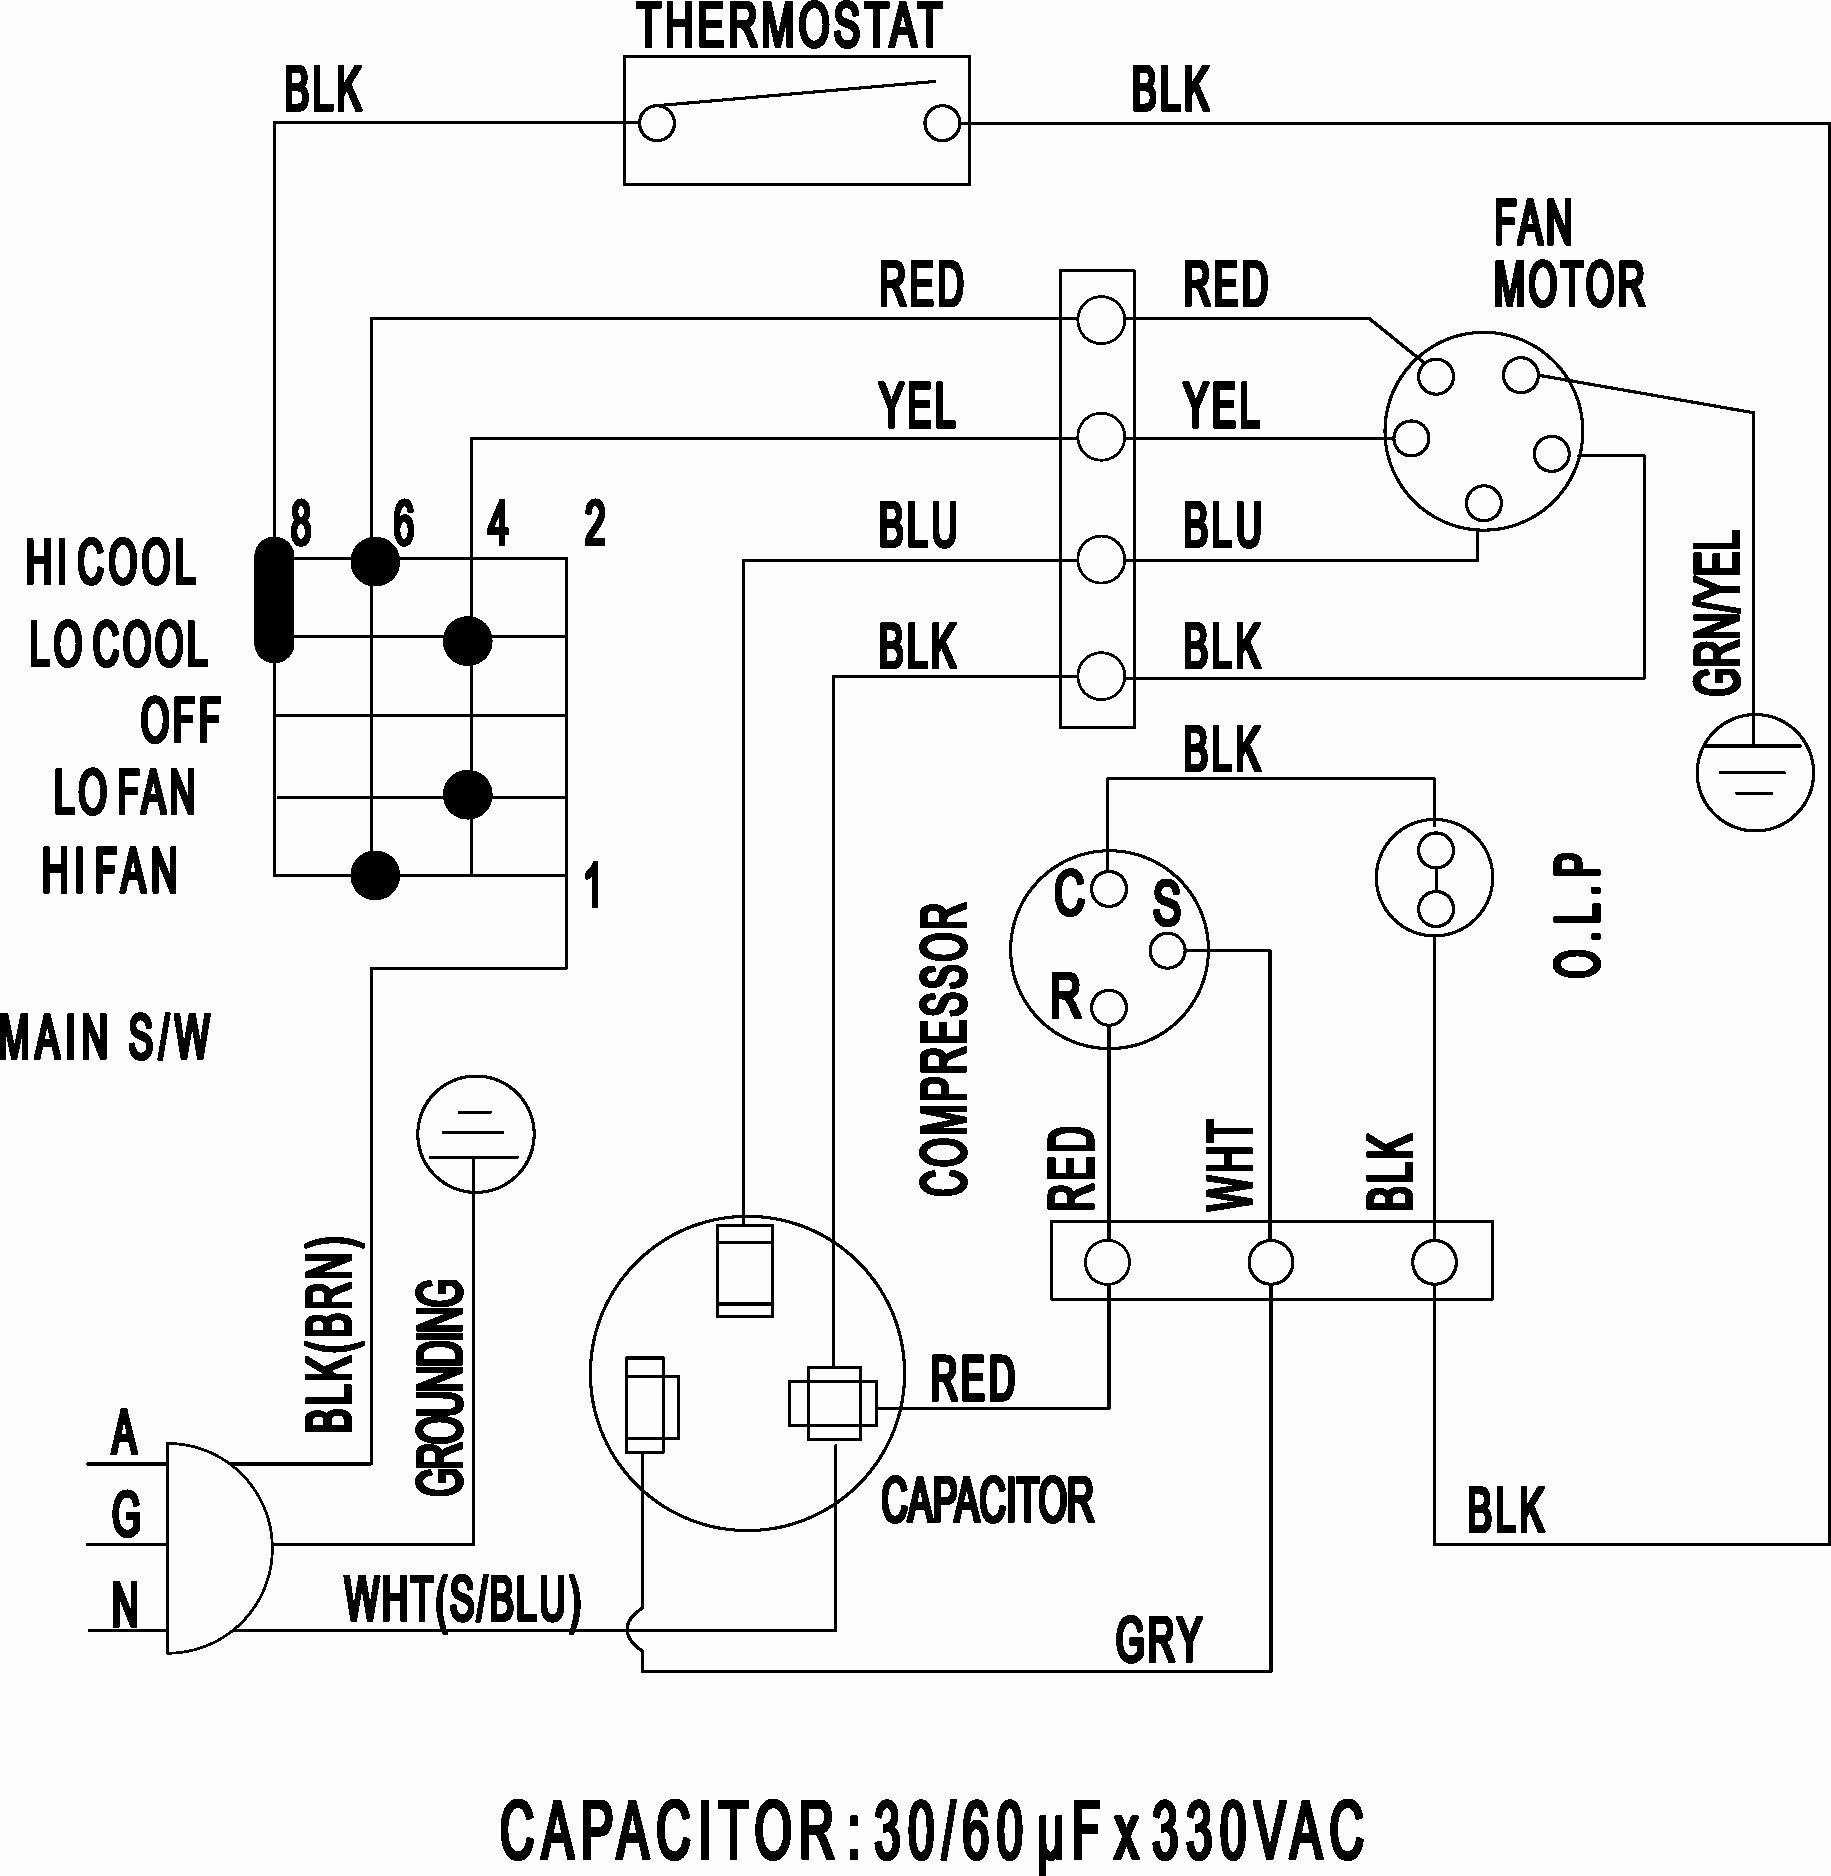 Ac Relay Wiring Diagram | Wiring Diagram on